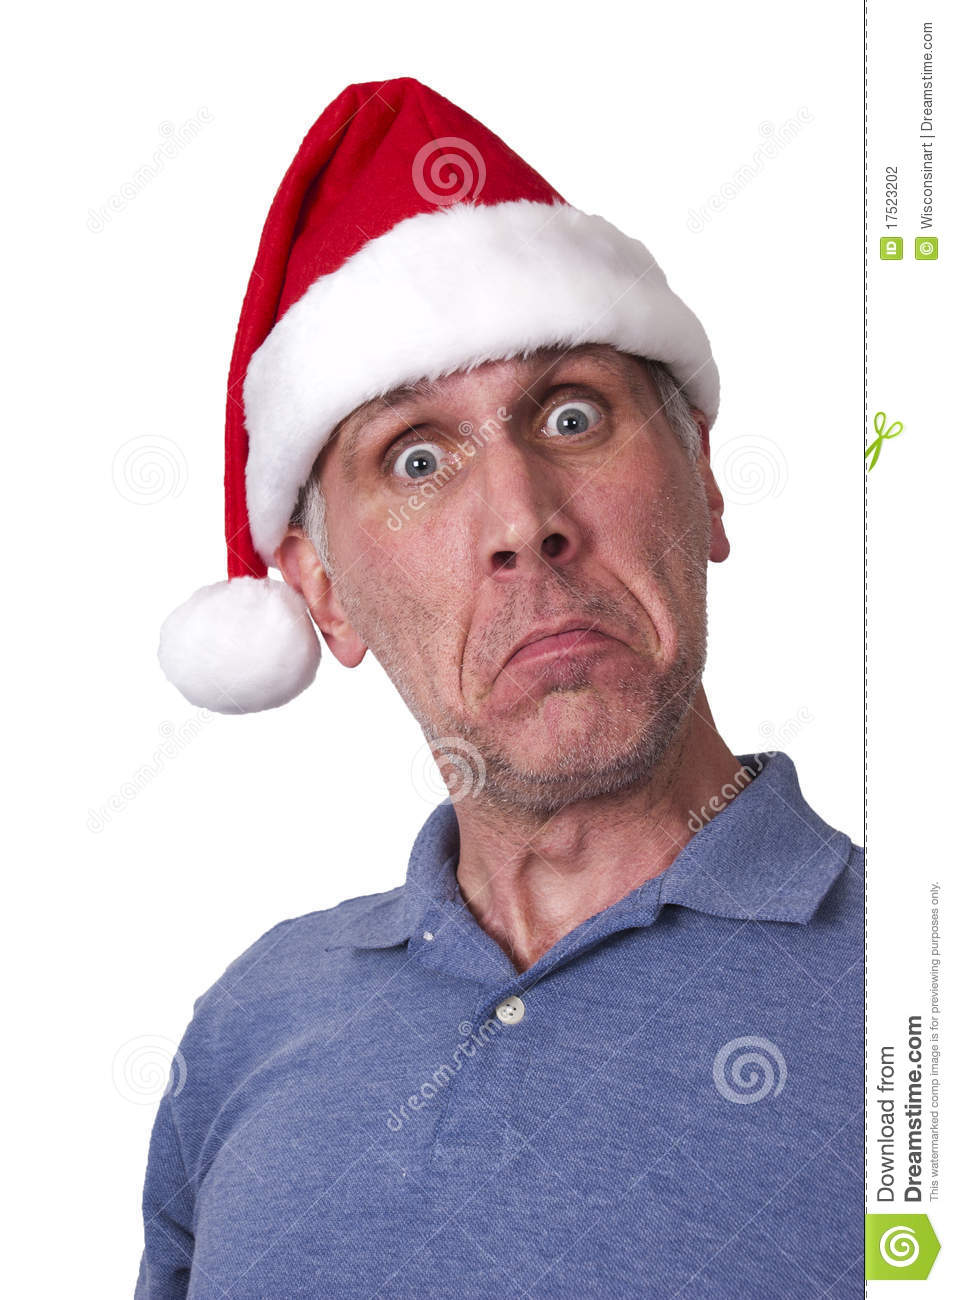 Sad Man Santa Claus Hat Merry Christmas Xmas Stock Photo